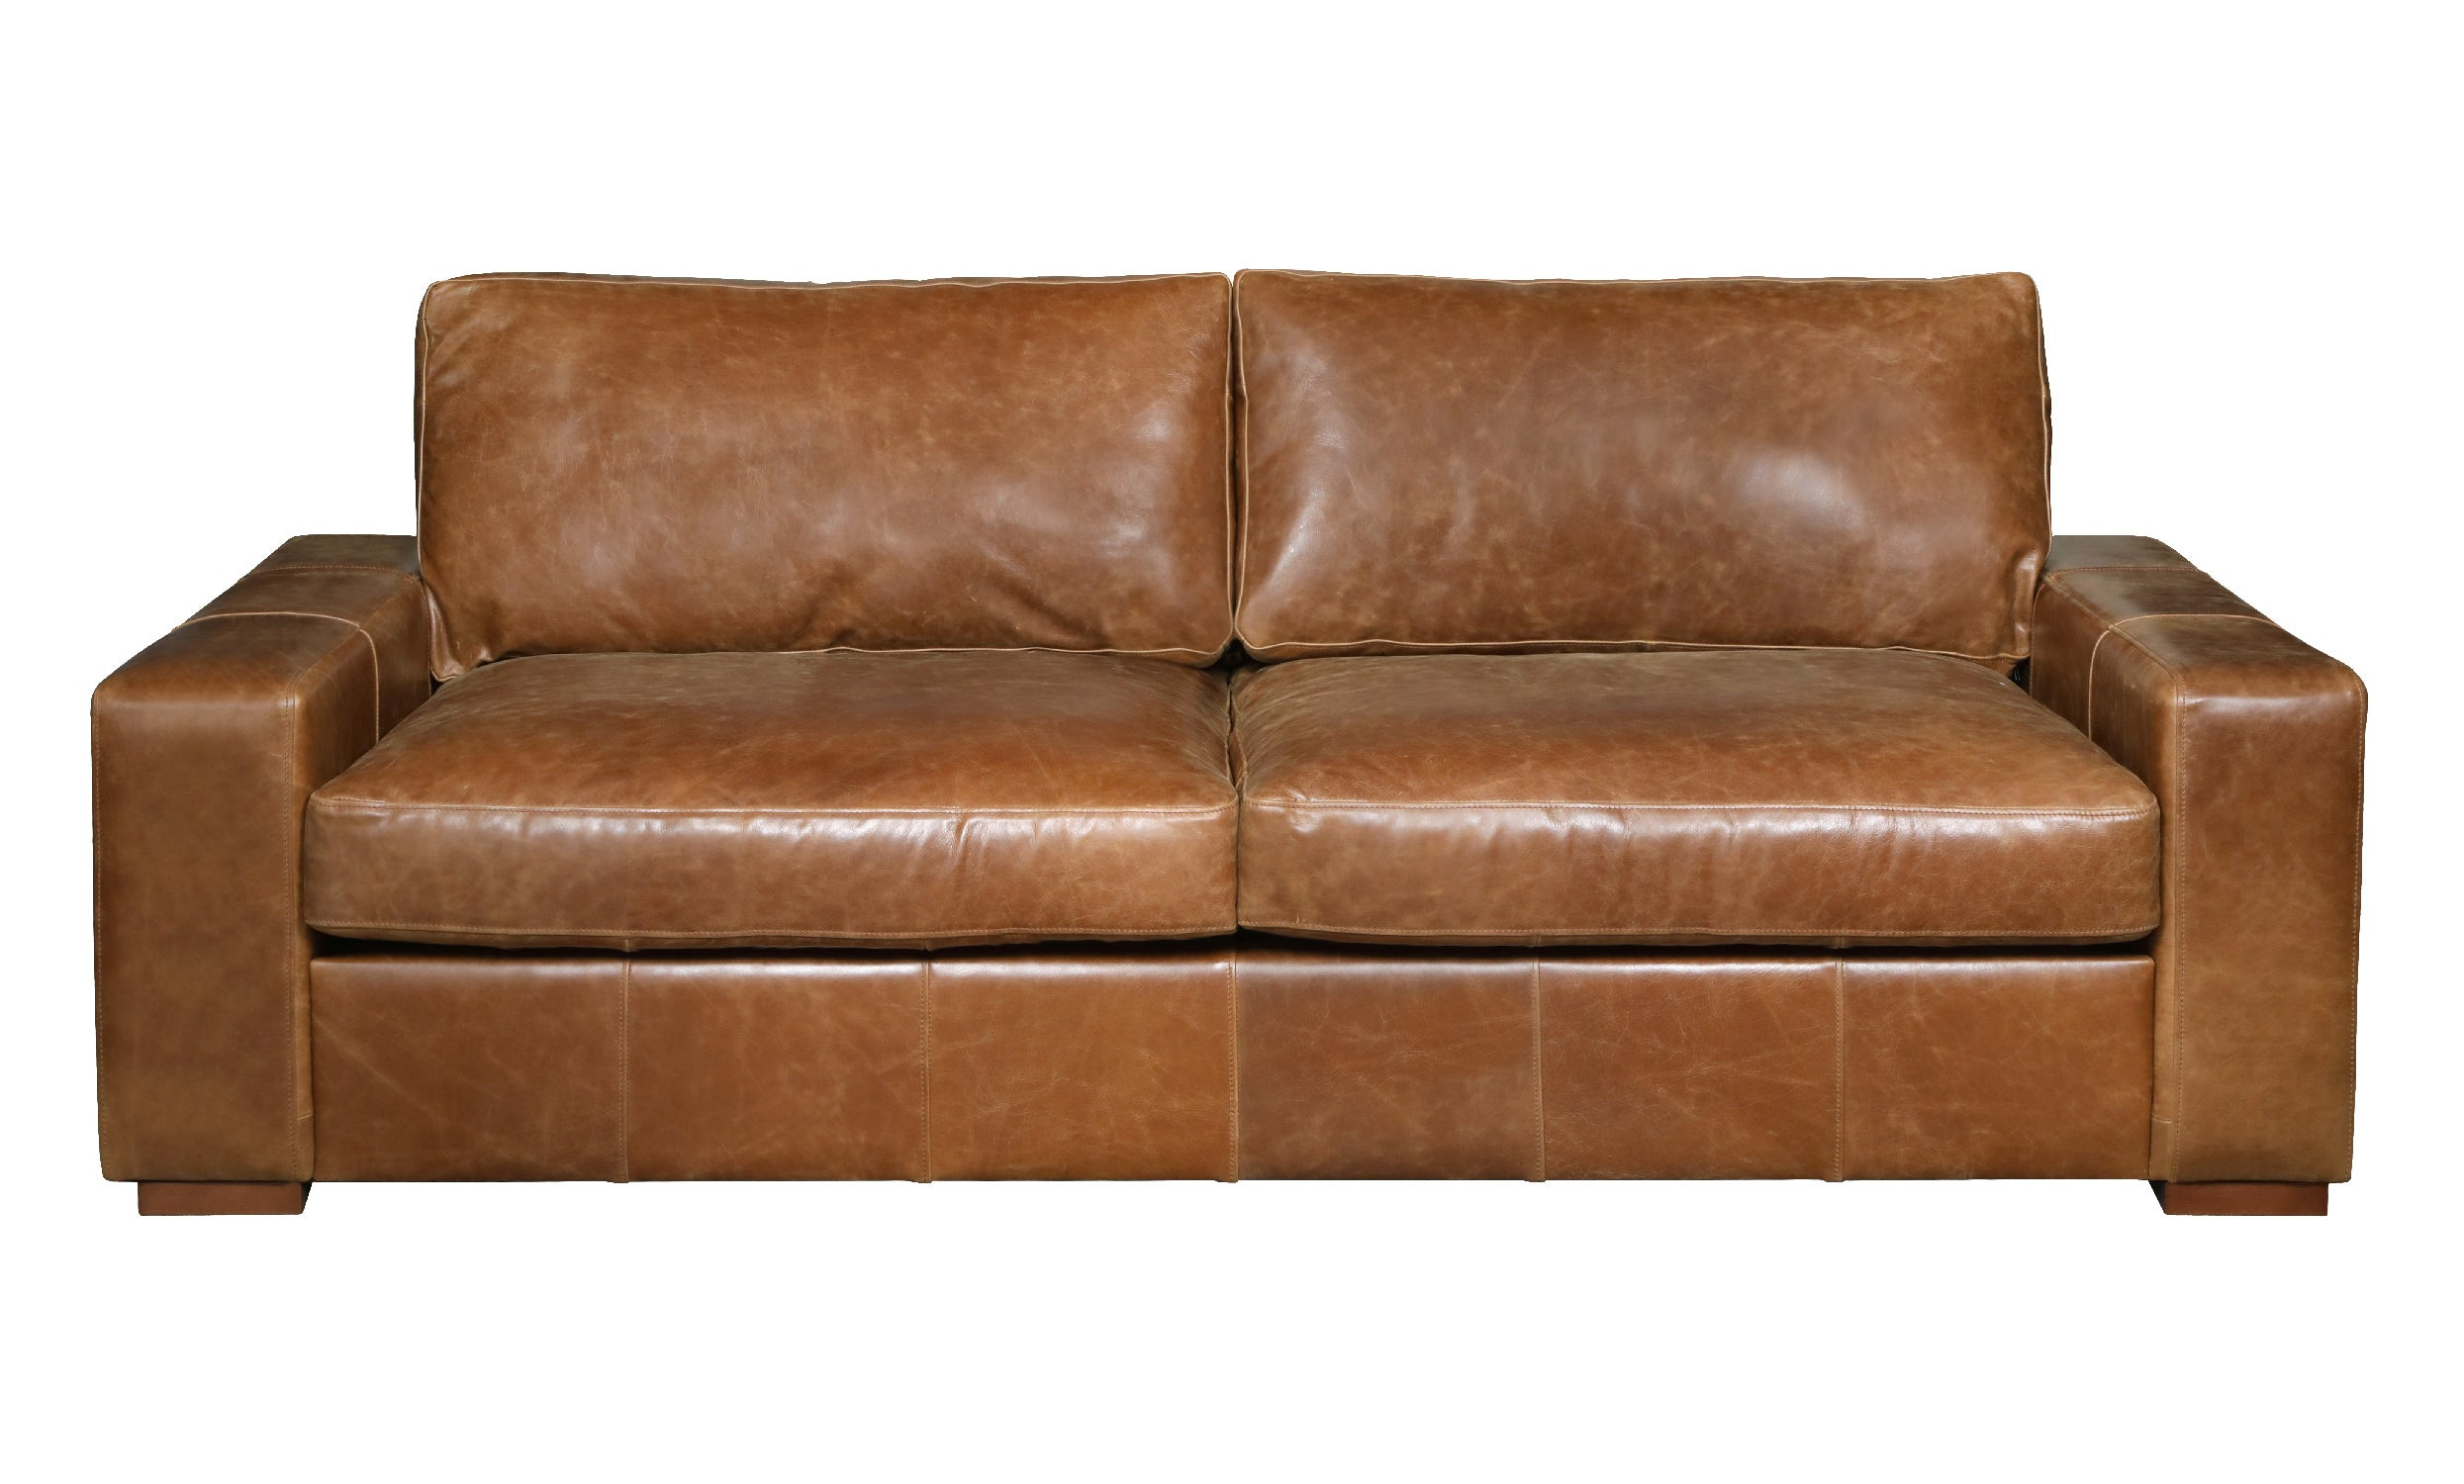 Maximus Full Aniline Leather Sofas-harris tweed leather sofas-Against The Grain Furniture-3 seater-Against The Grain Furniture